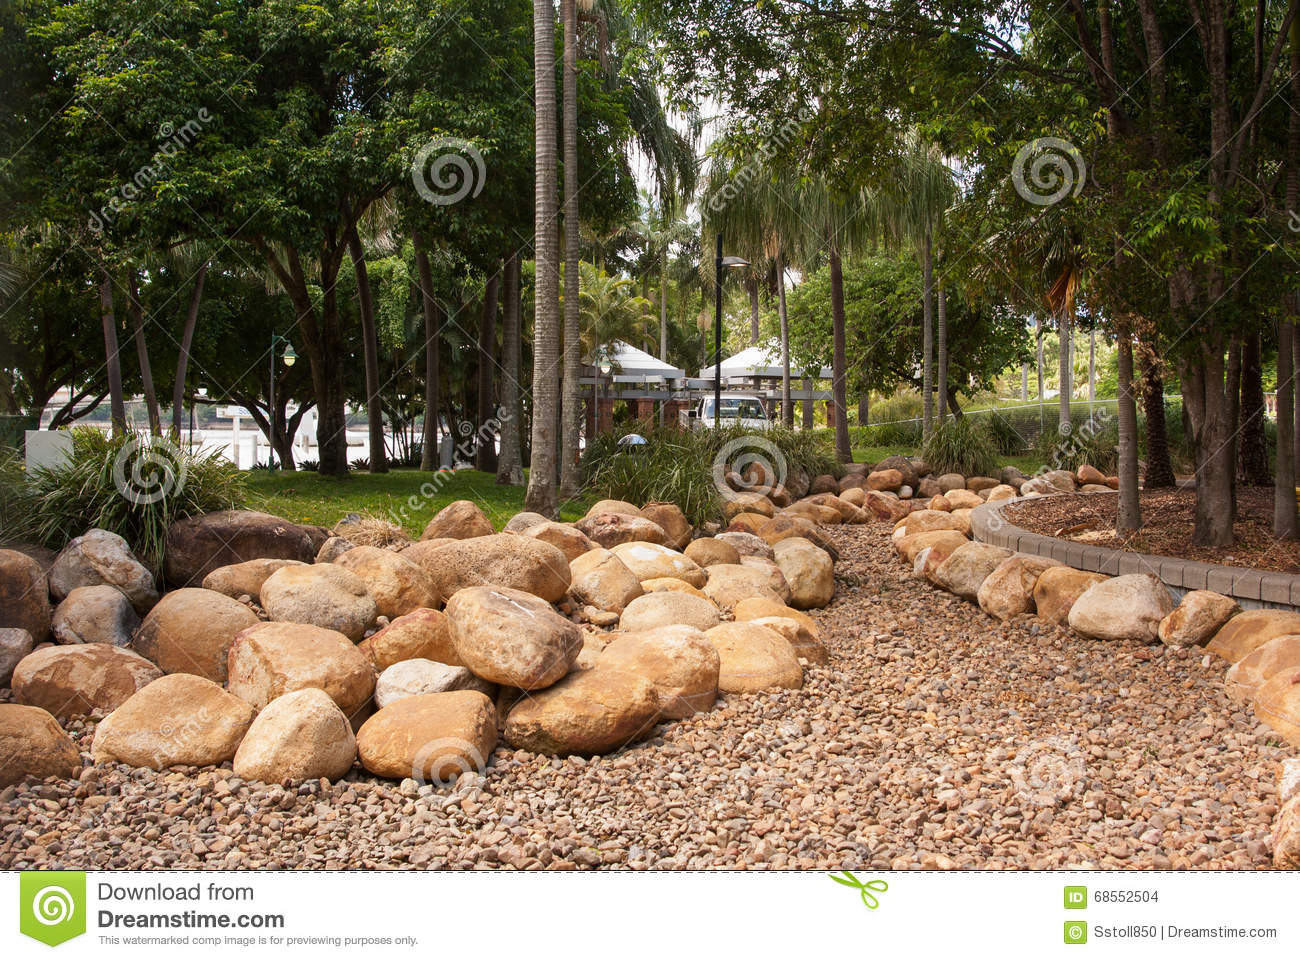 Tropical Garden With Palms And Rocks Stock Photo - Image of drainage ...